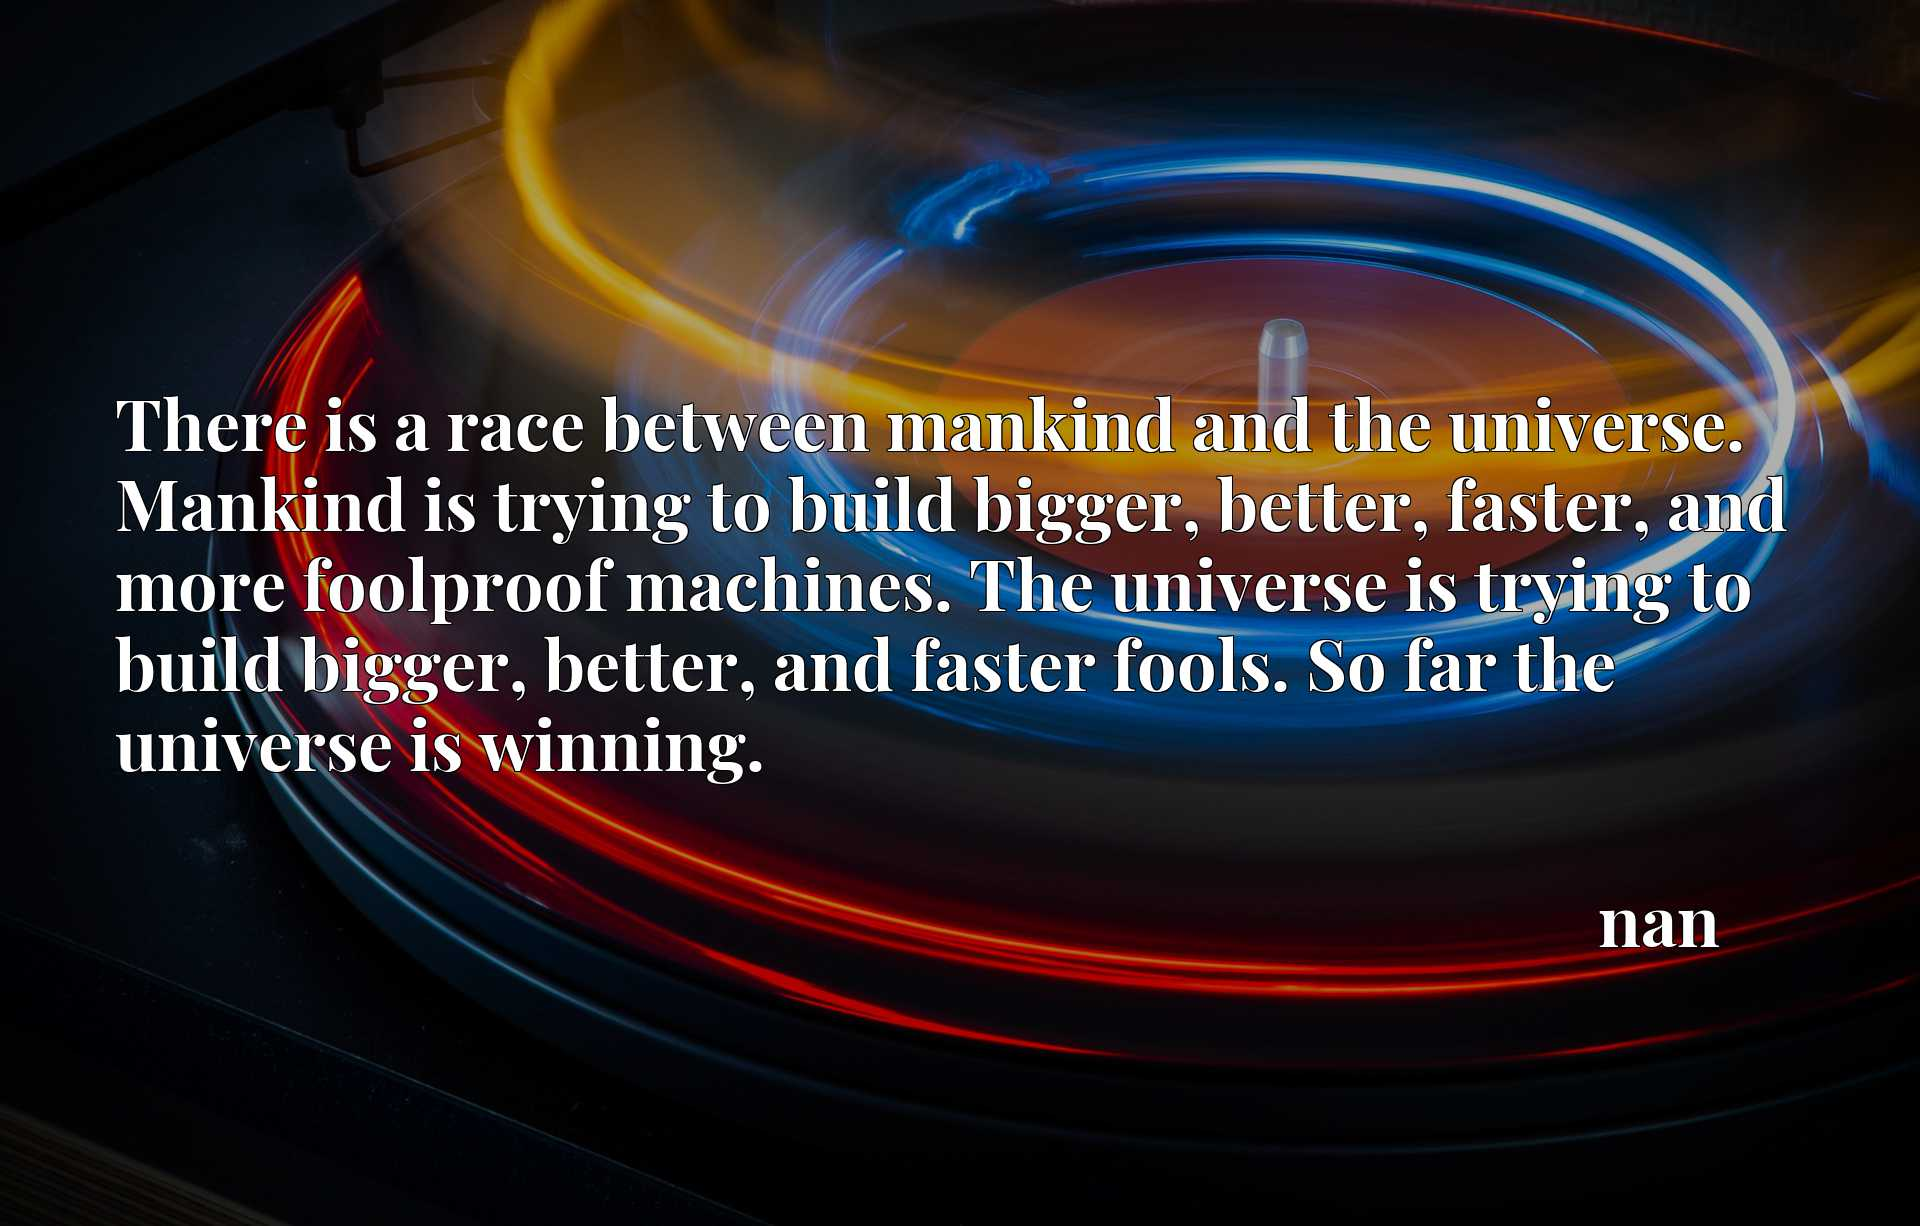 There is a race between mankind and the universe. Mankind is trying to build bigger, better, faster, and more foolproof machines. The universe is trying to build bigger, better, and faster fools. So far the universe is winning.